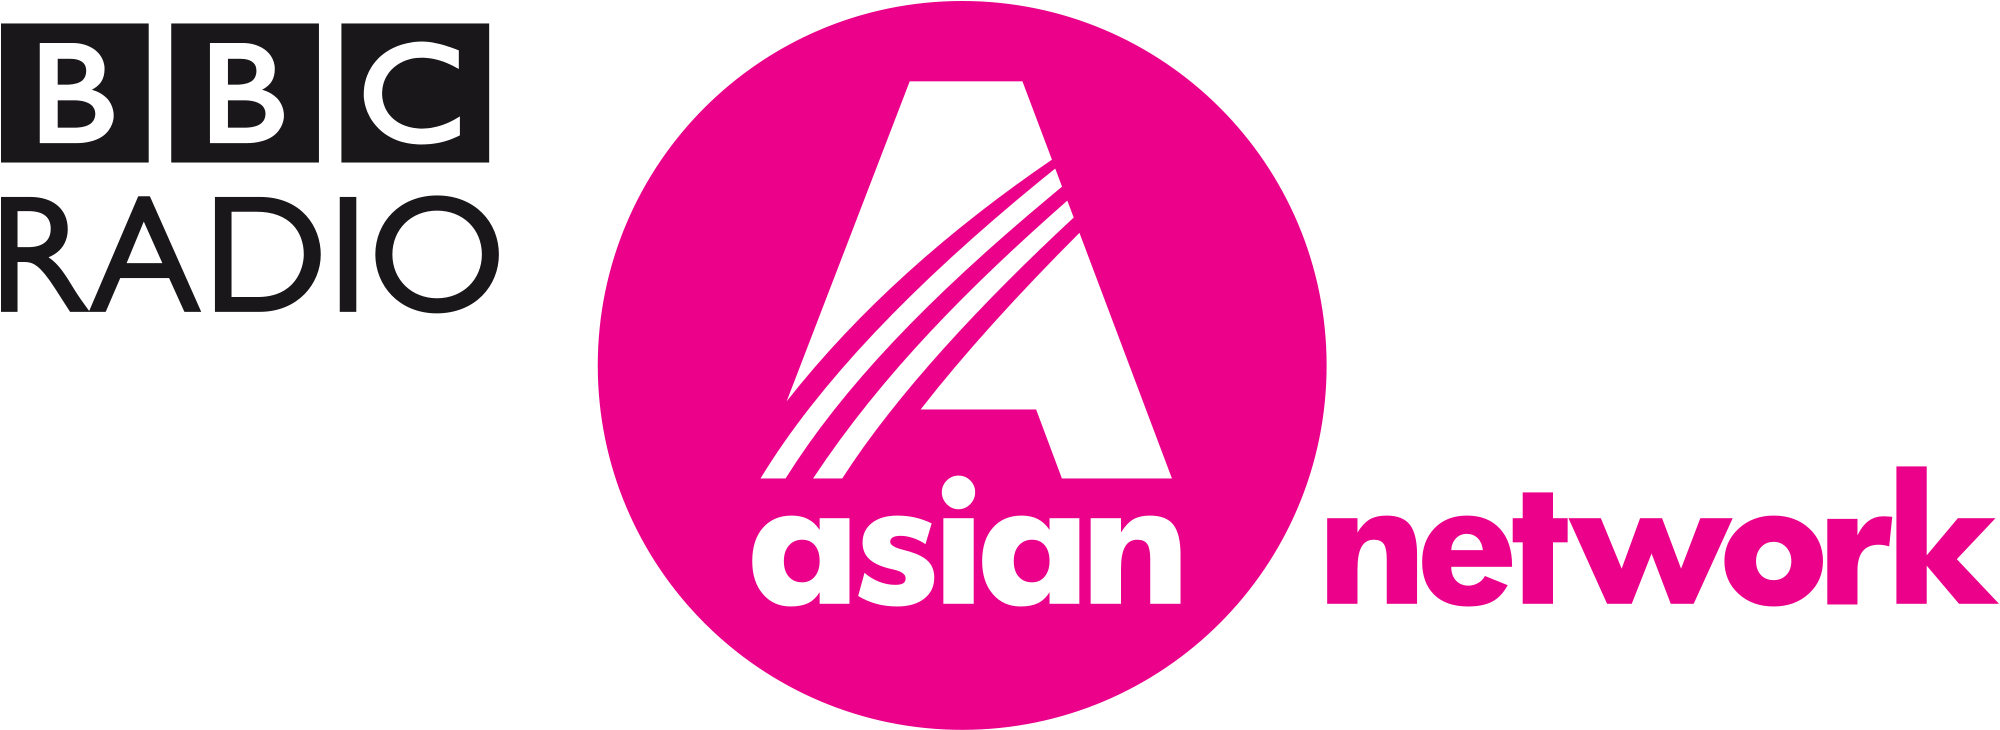 asian-network-title